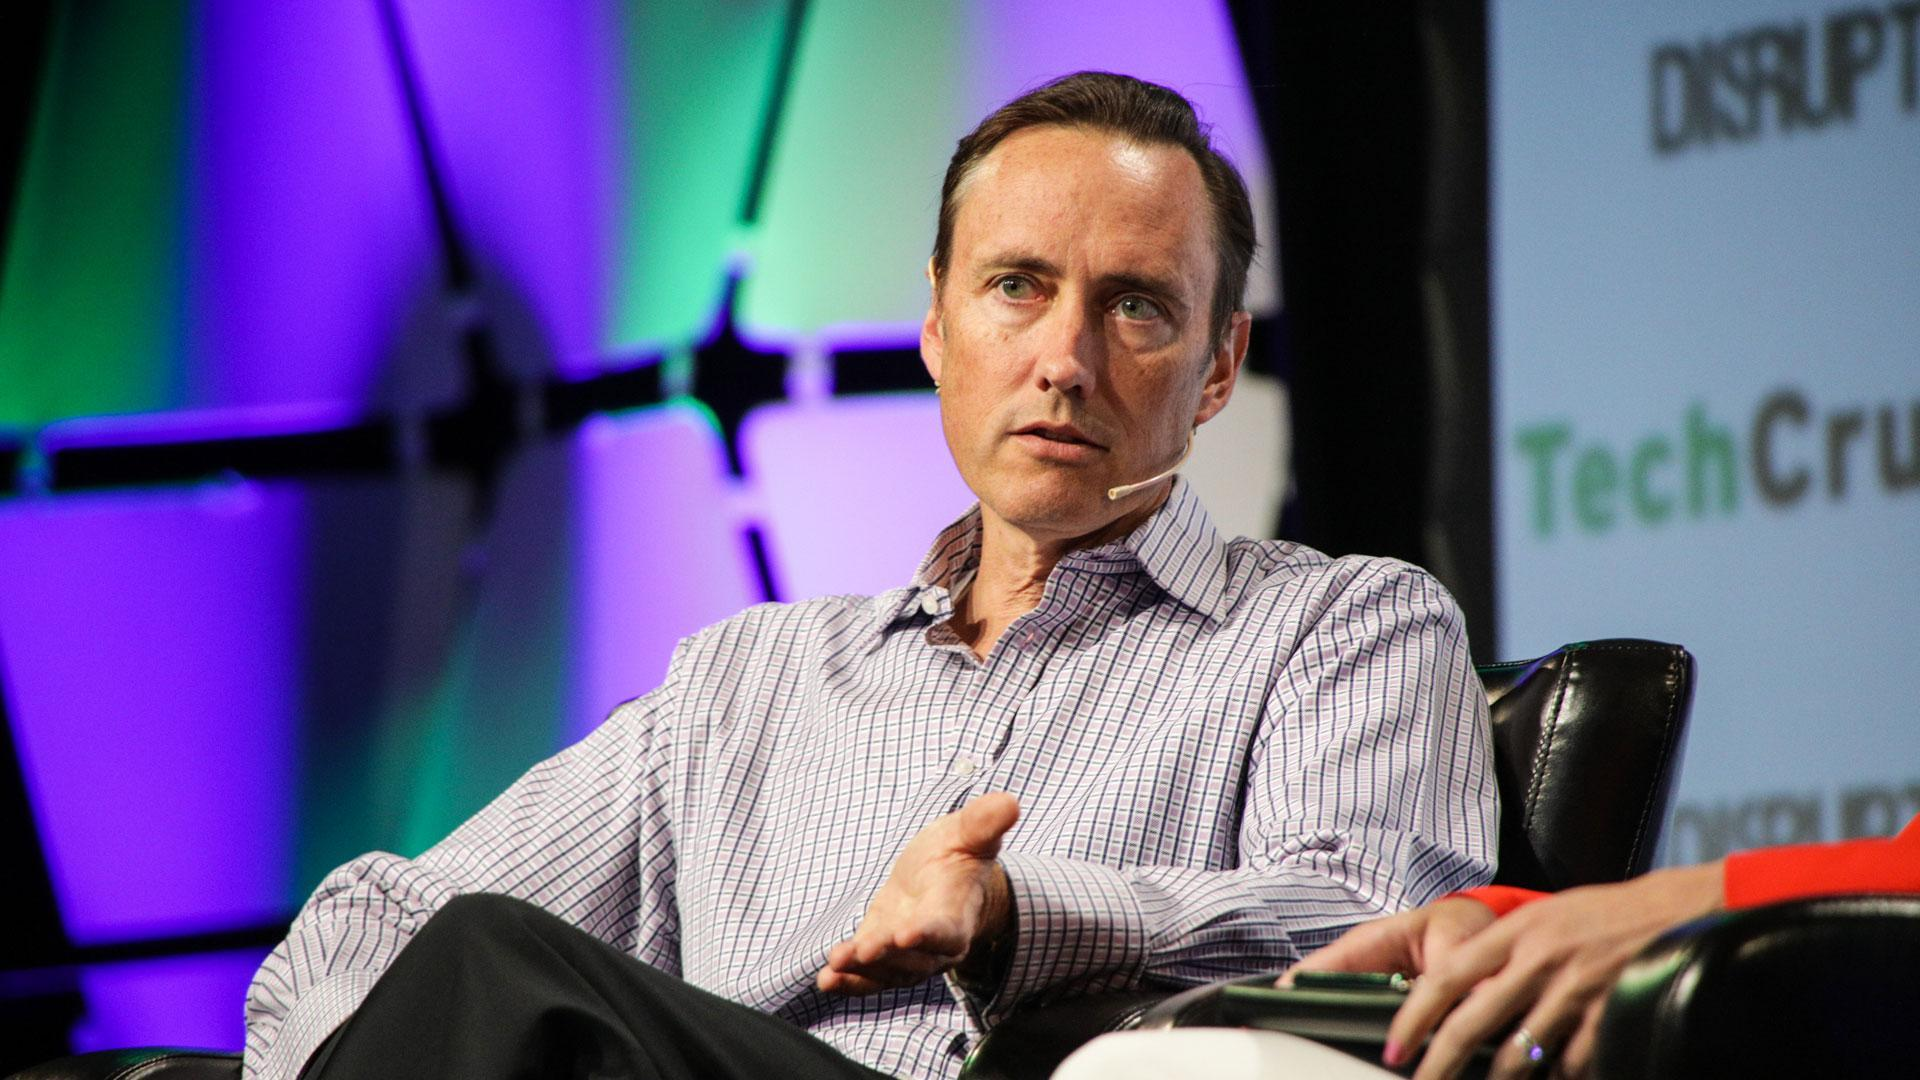 DFJ's Steve Jurvetson on the Rise of the Machines